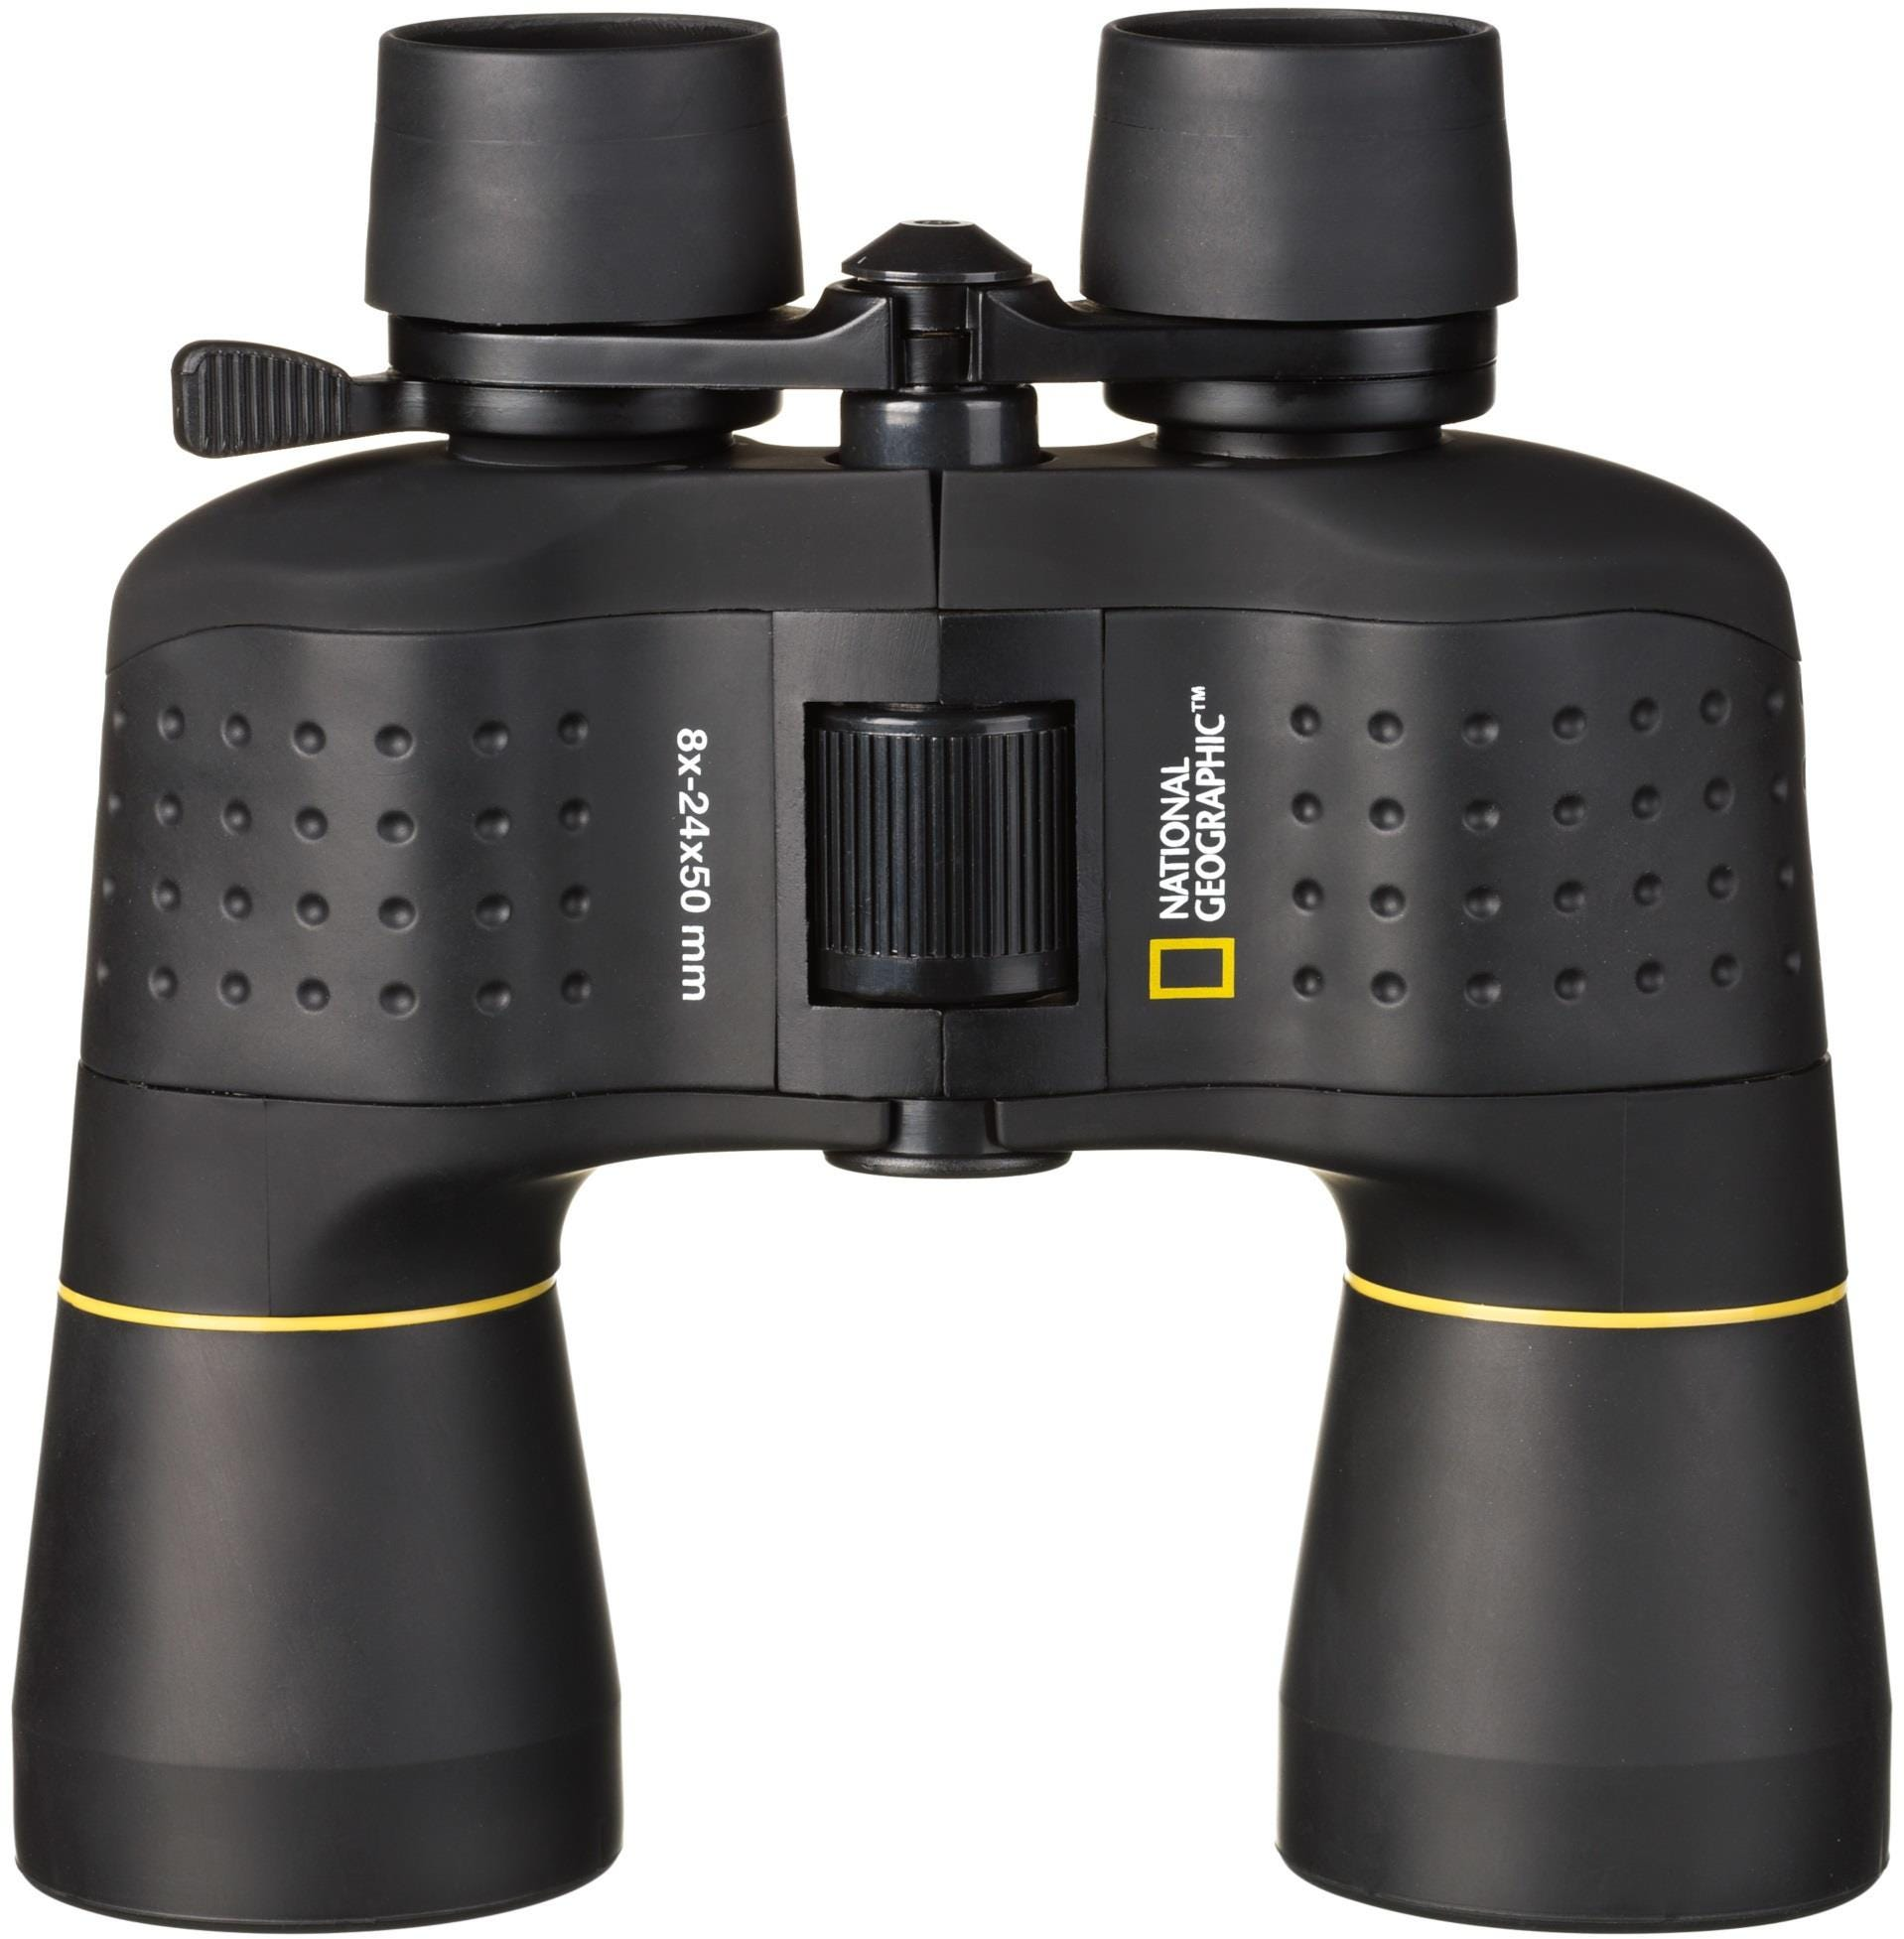 National Geographic Zoom 8-24 x 50 mm Binoculars - Black